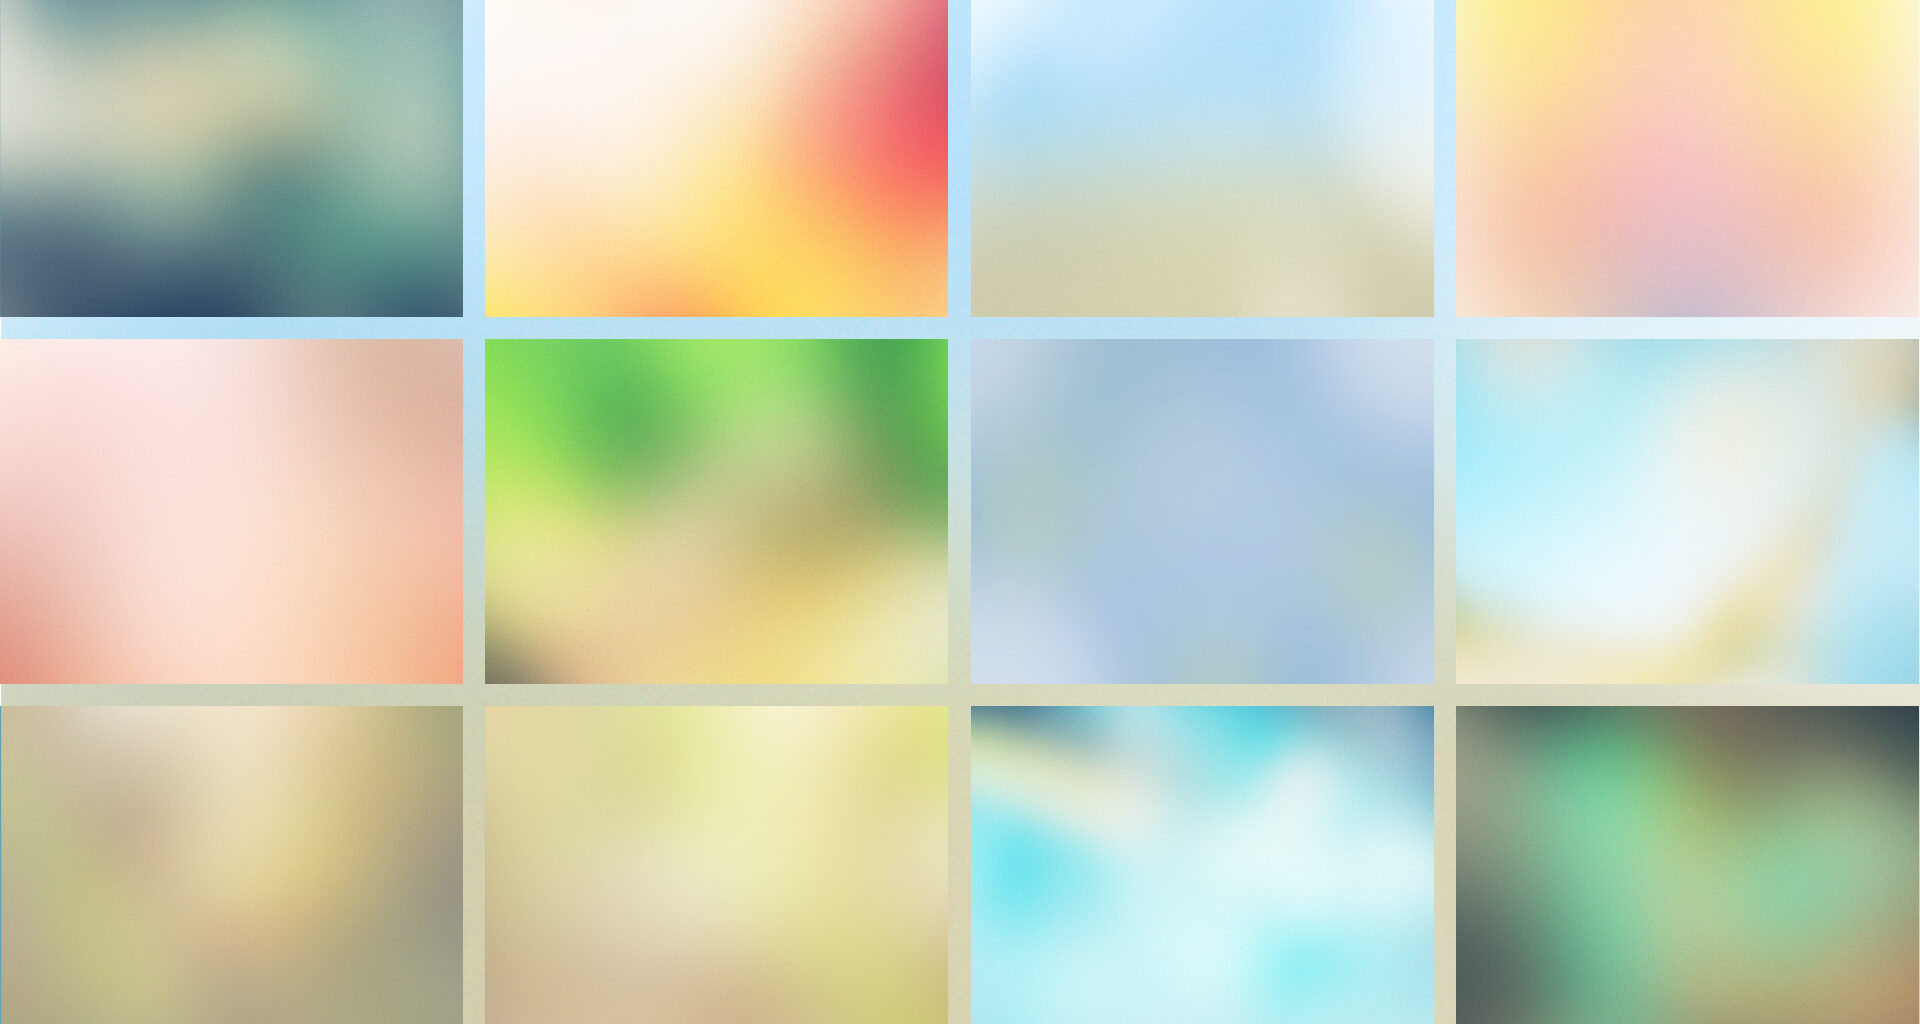 PowerPoint Tutorial: How to Create Blurred Backgrounds